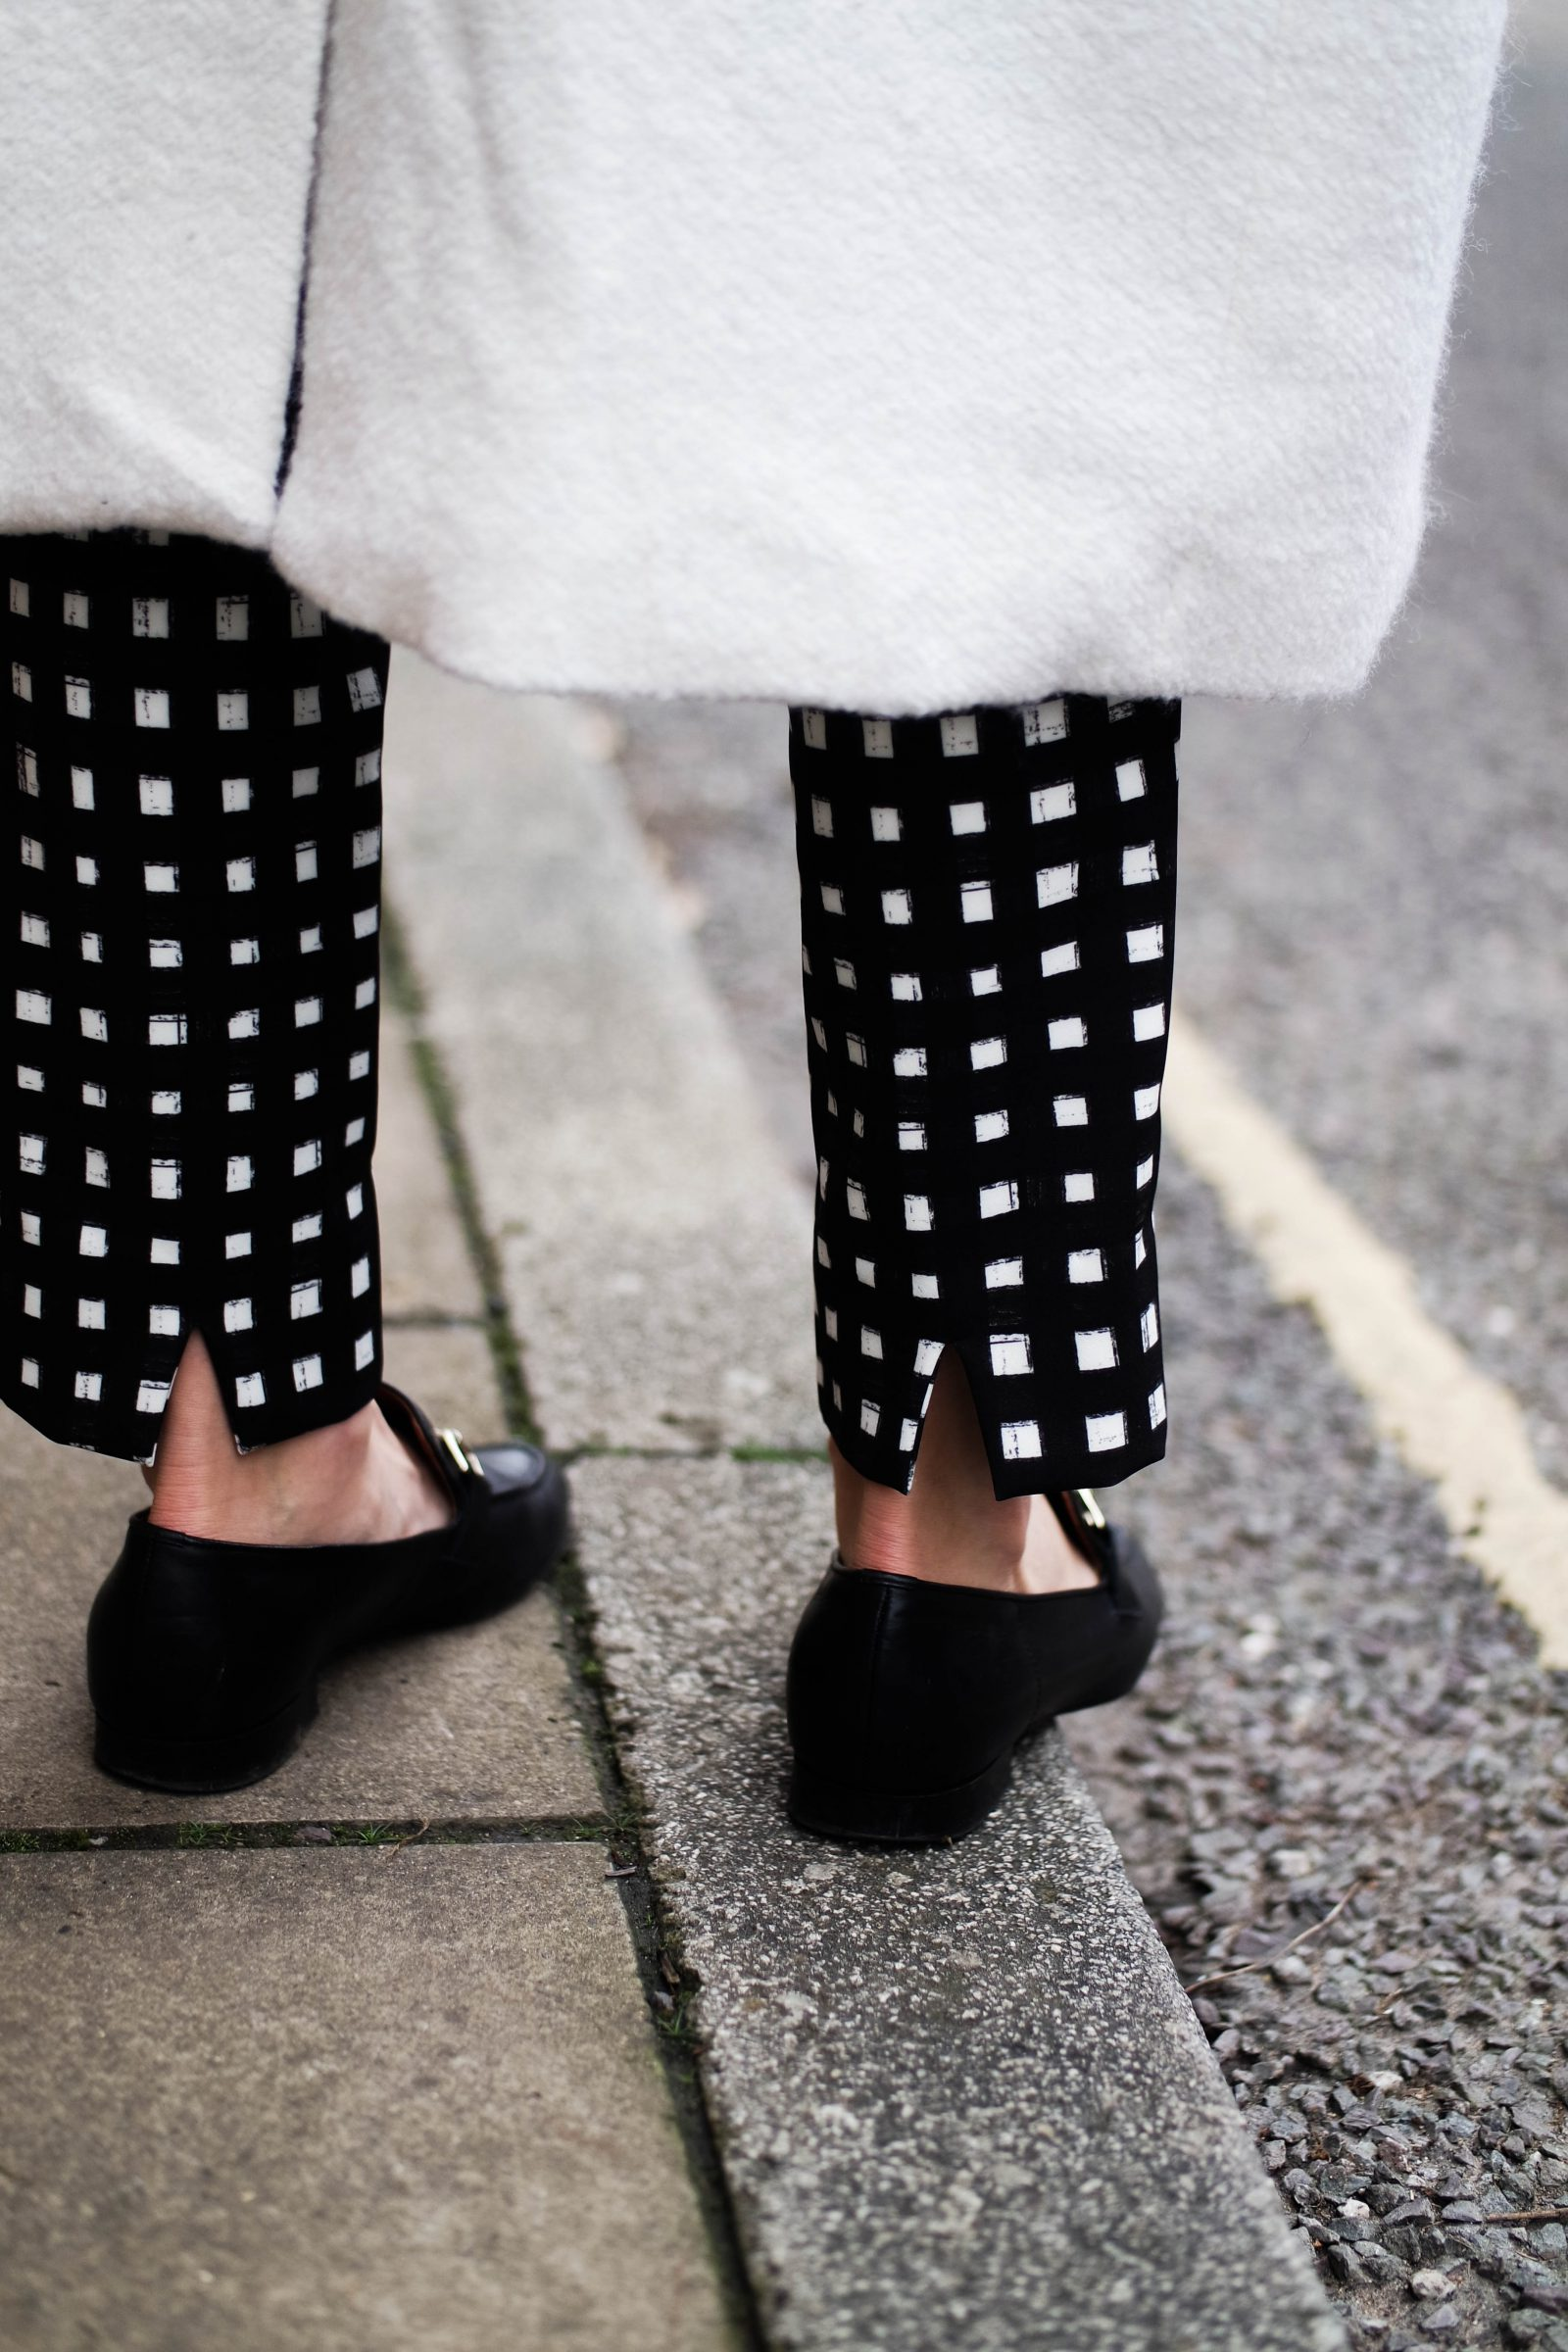 Printed Trousers Trying Something New - Printed Trousers